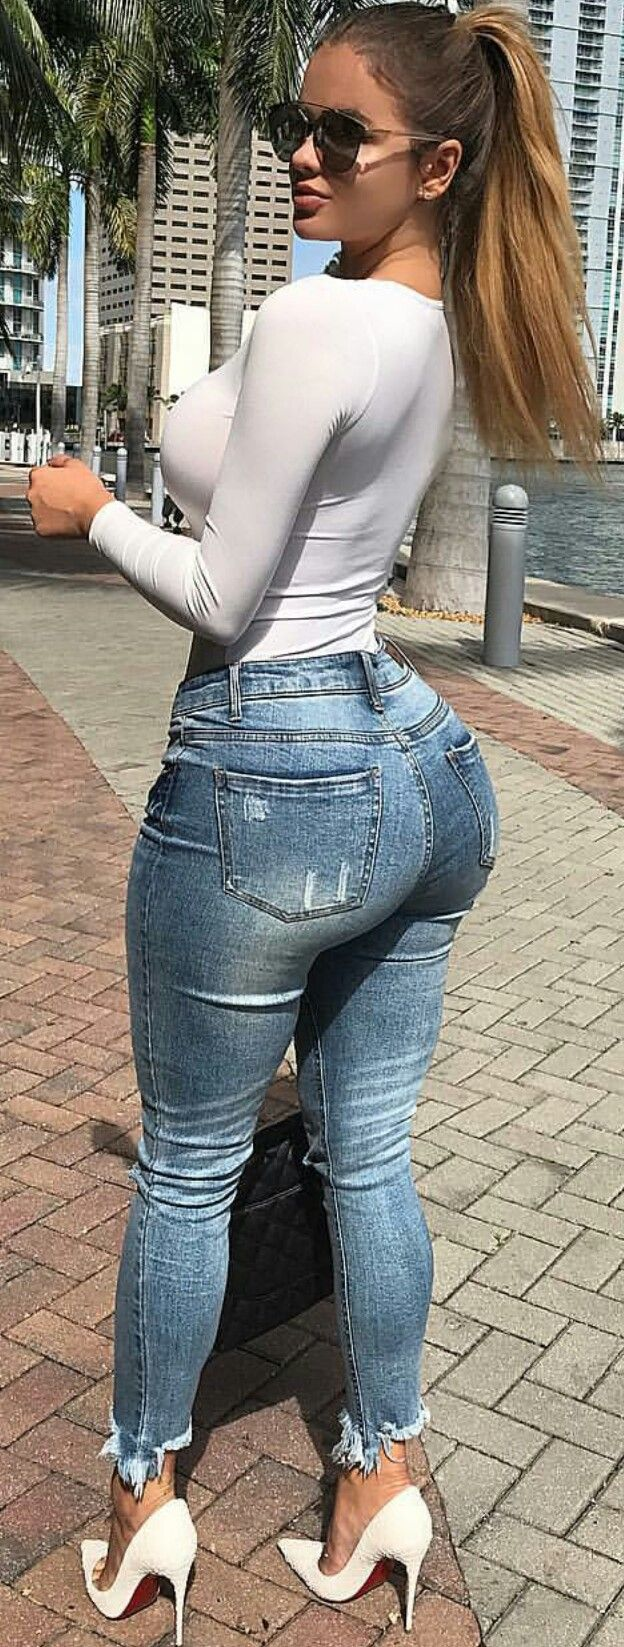 Hot sexy ass blonde tight jeans